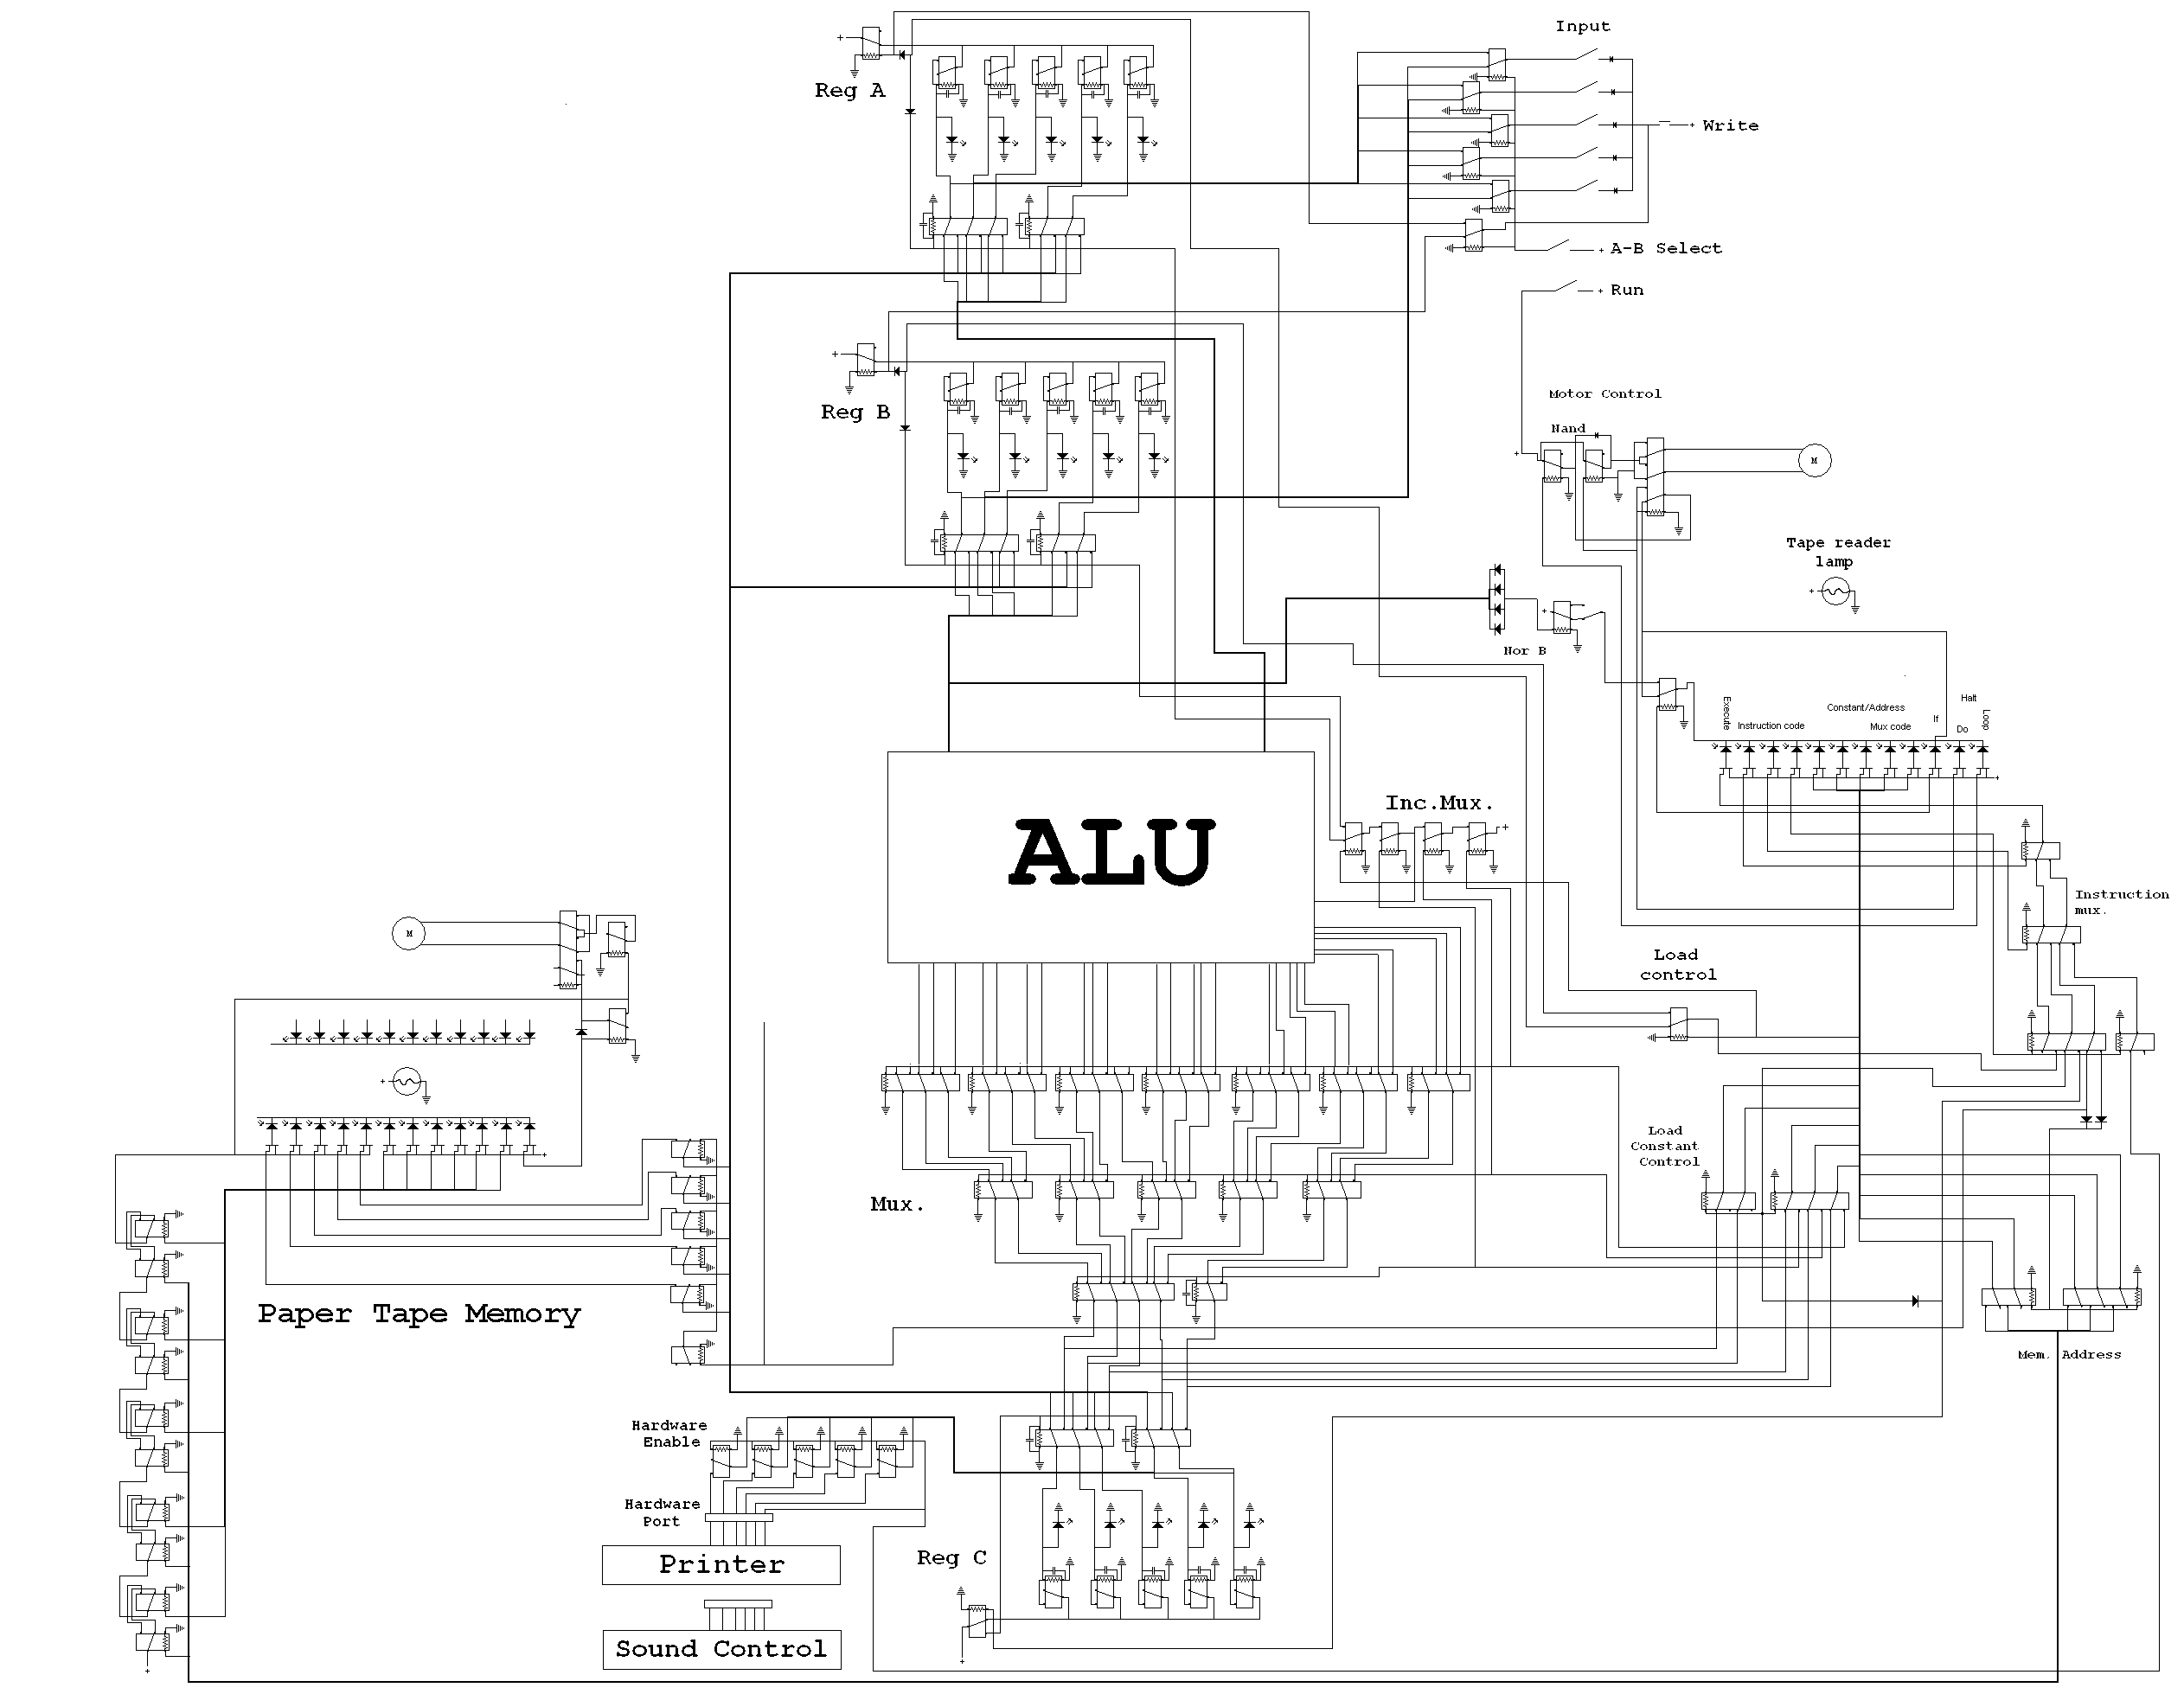 8 Bit Alu Circuit Diagram Trusted Wiring Logic For 1 Multiplexer Library